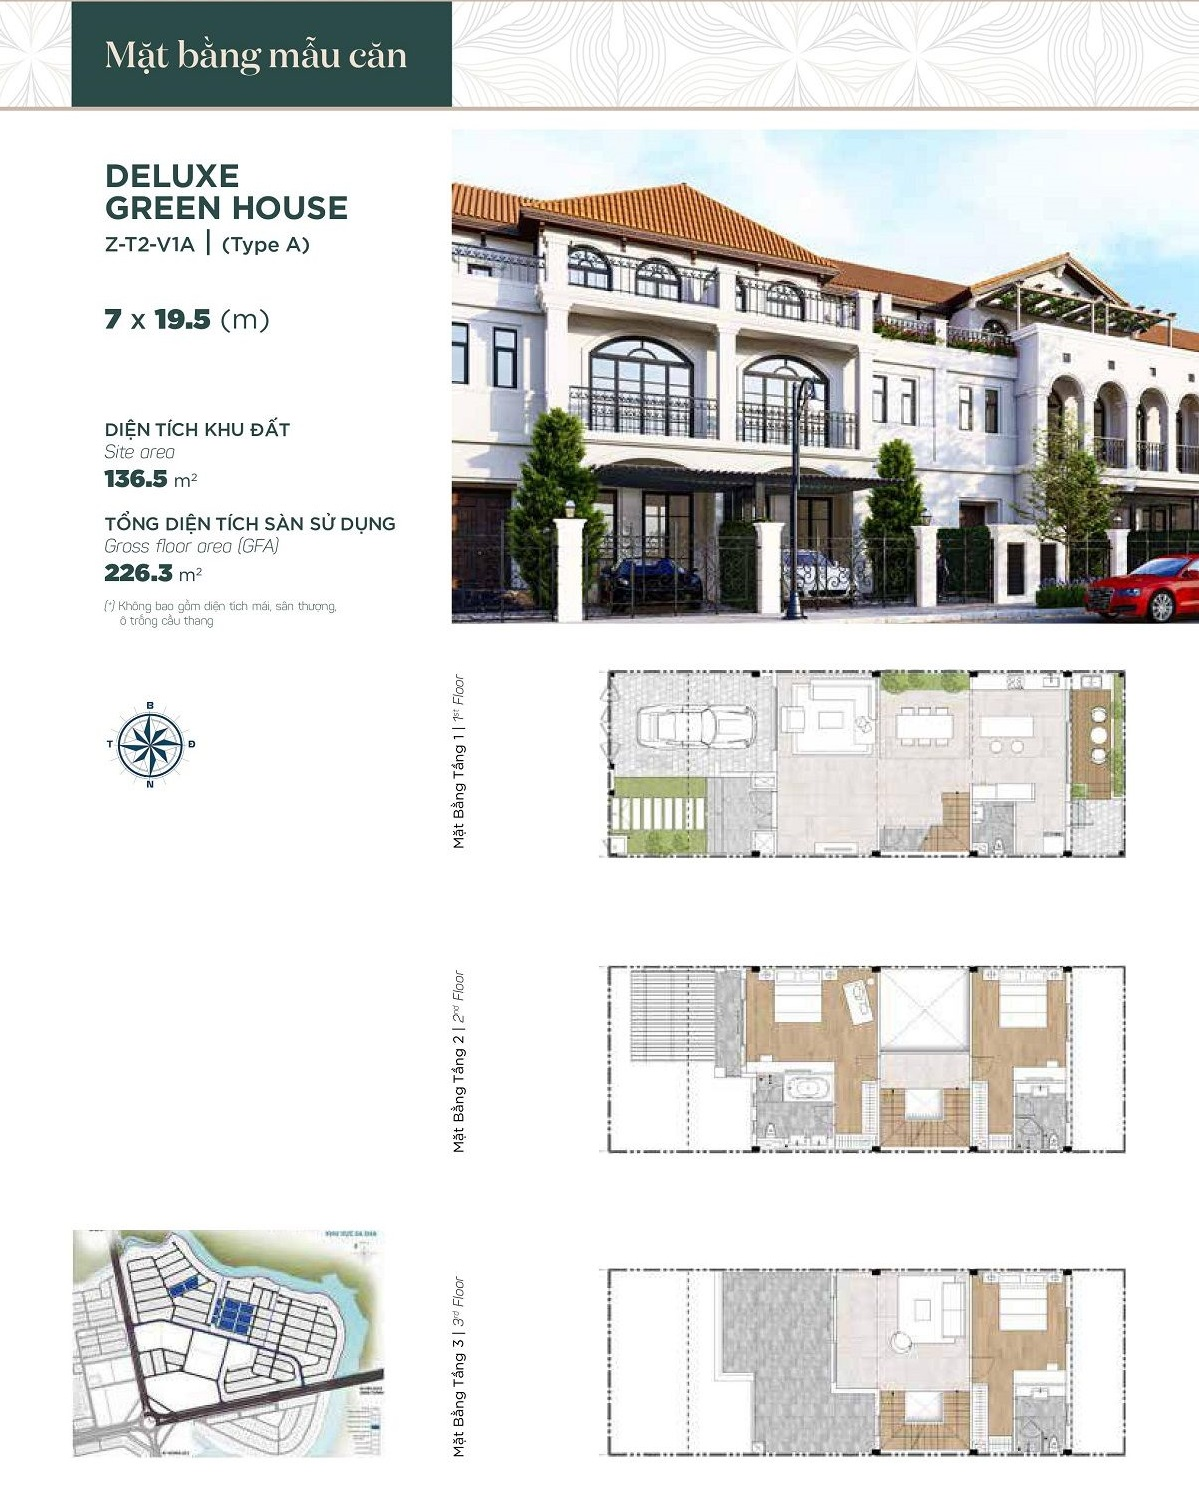 deluxe-green-house-7x19-5m-type-a-valencia